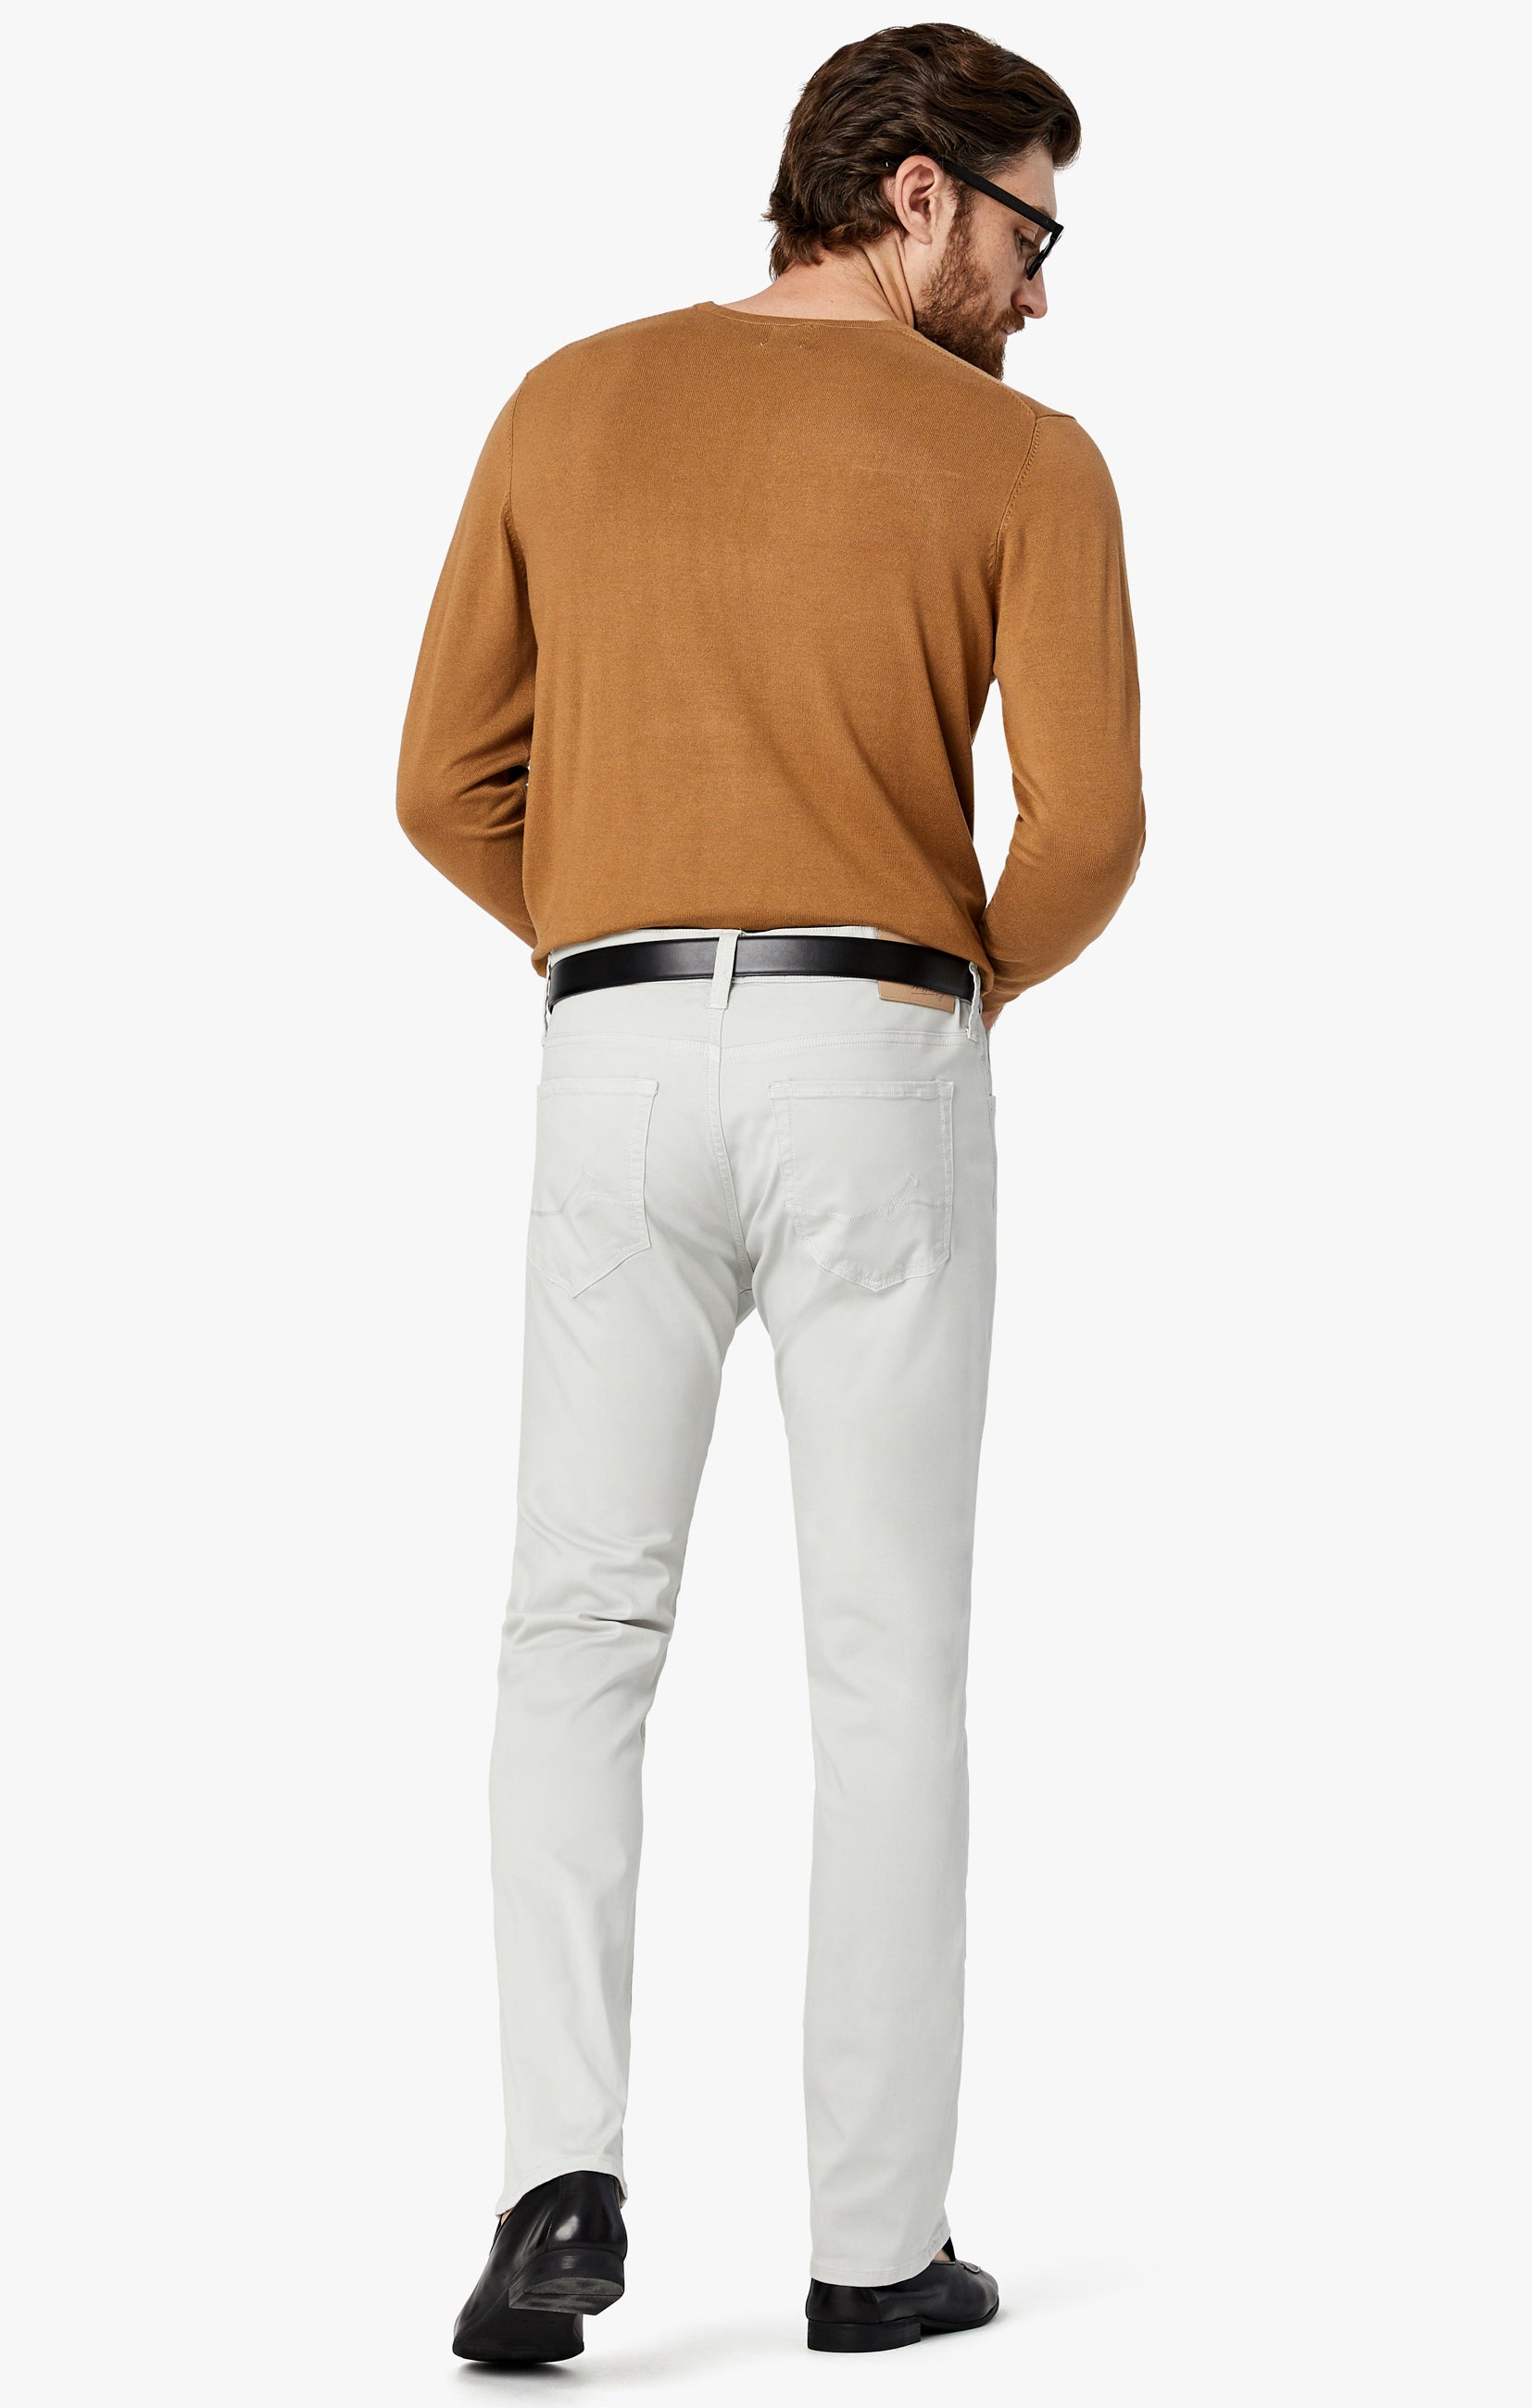 Courage Straight Leg Jeans in Bone Twill Image 3